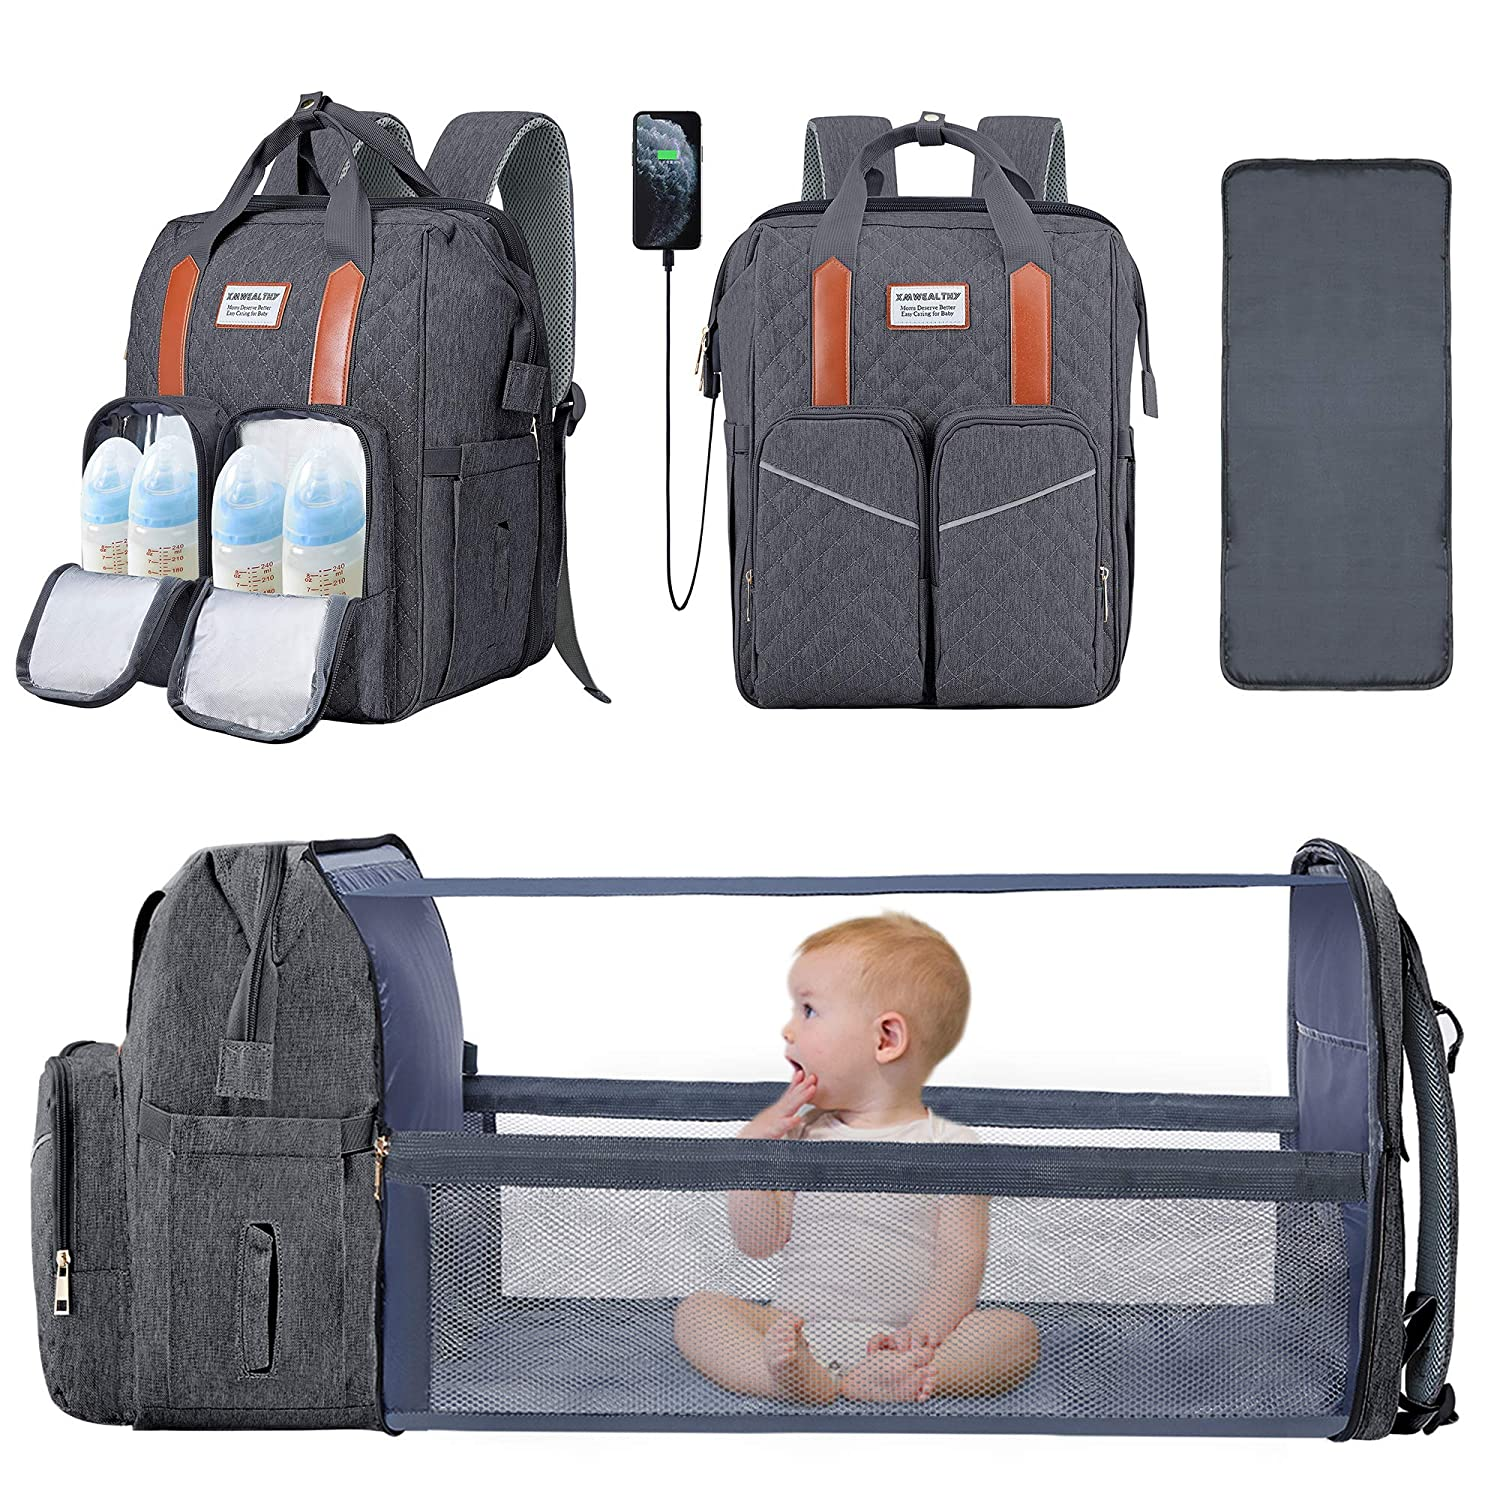 3 in 1 Baby Diaper Bag with Changing Station Backpack Foldable Diaper Bag with Bassinet Portable Baby Bag Travel Changing Bed Large Capacity Stroller Straps, Insulated Pockets, Gift for Mom